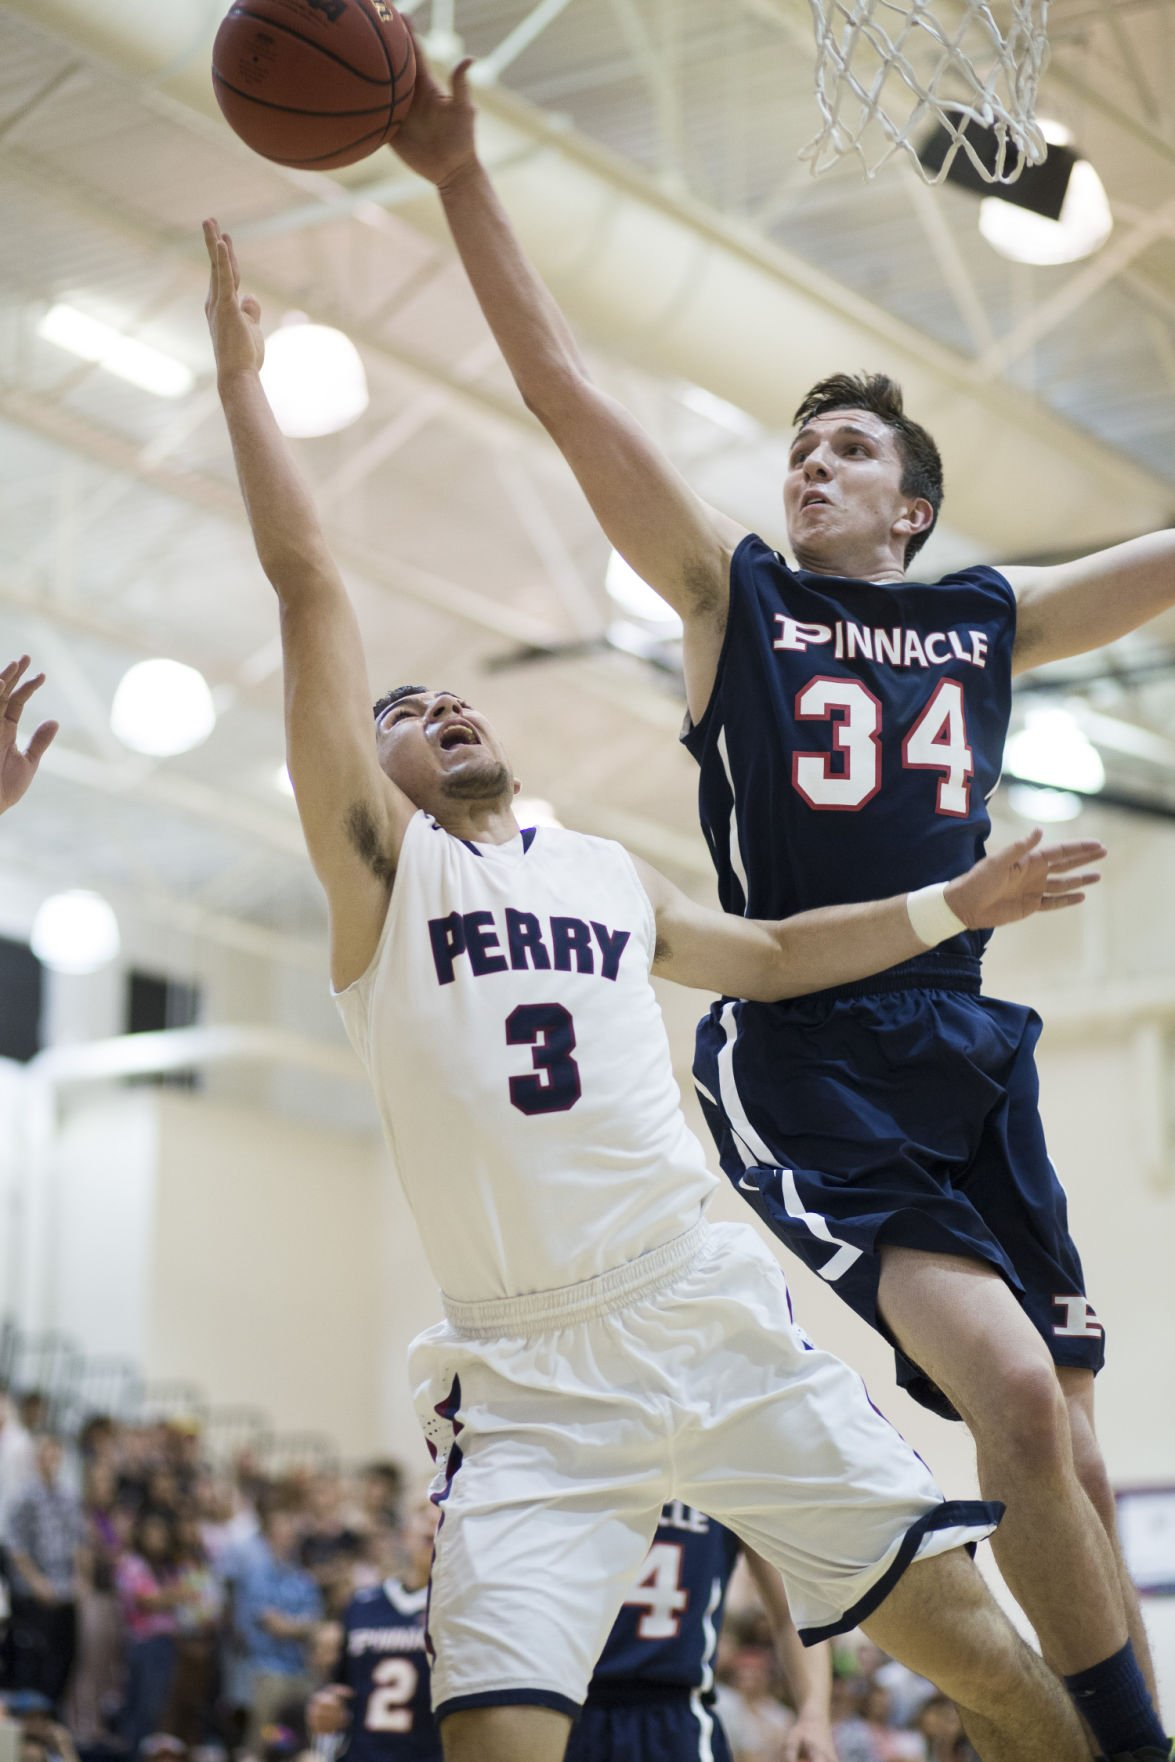 Basketball: Perry vs Pinnacle